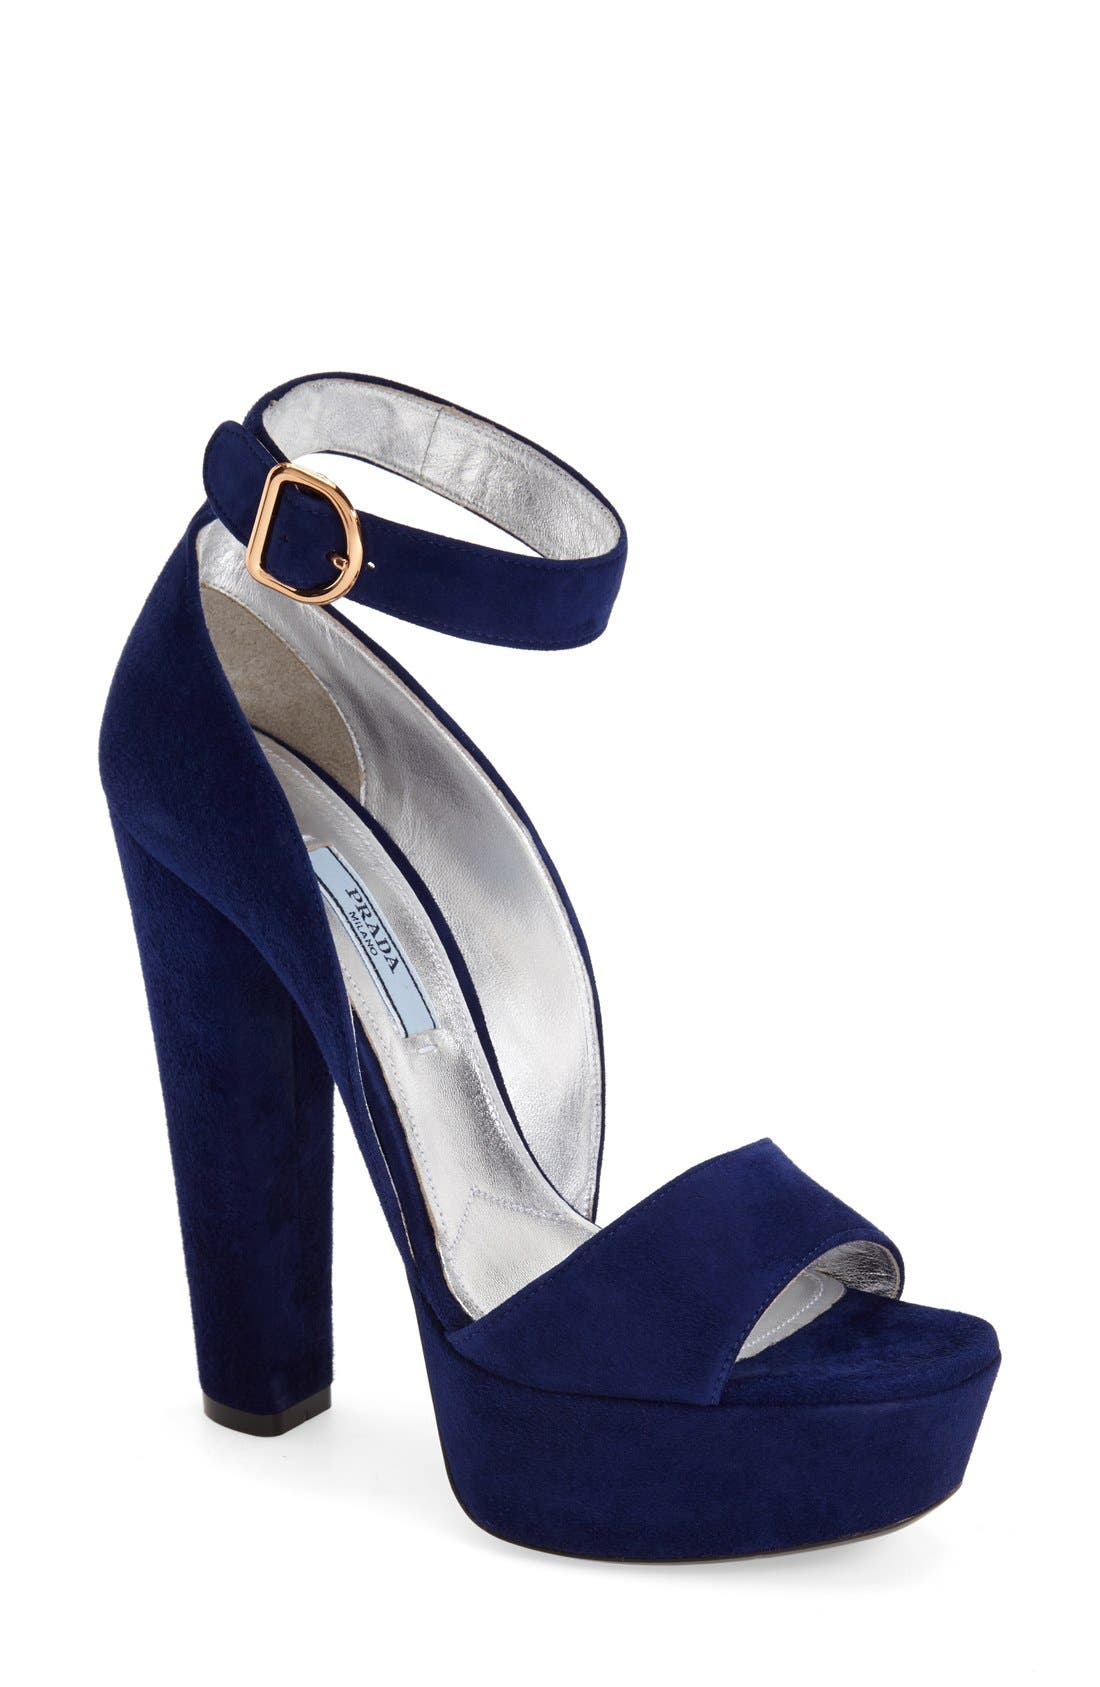 Alternate Image 1 Selected - Prada Chunky Heel Sandal (Women)